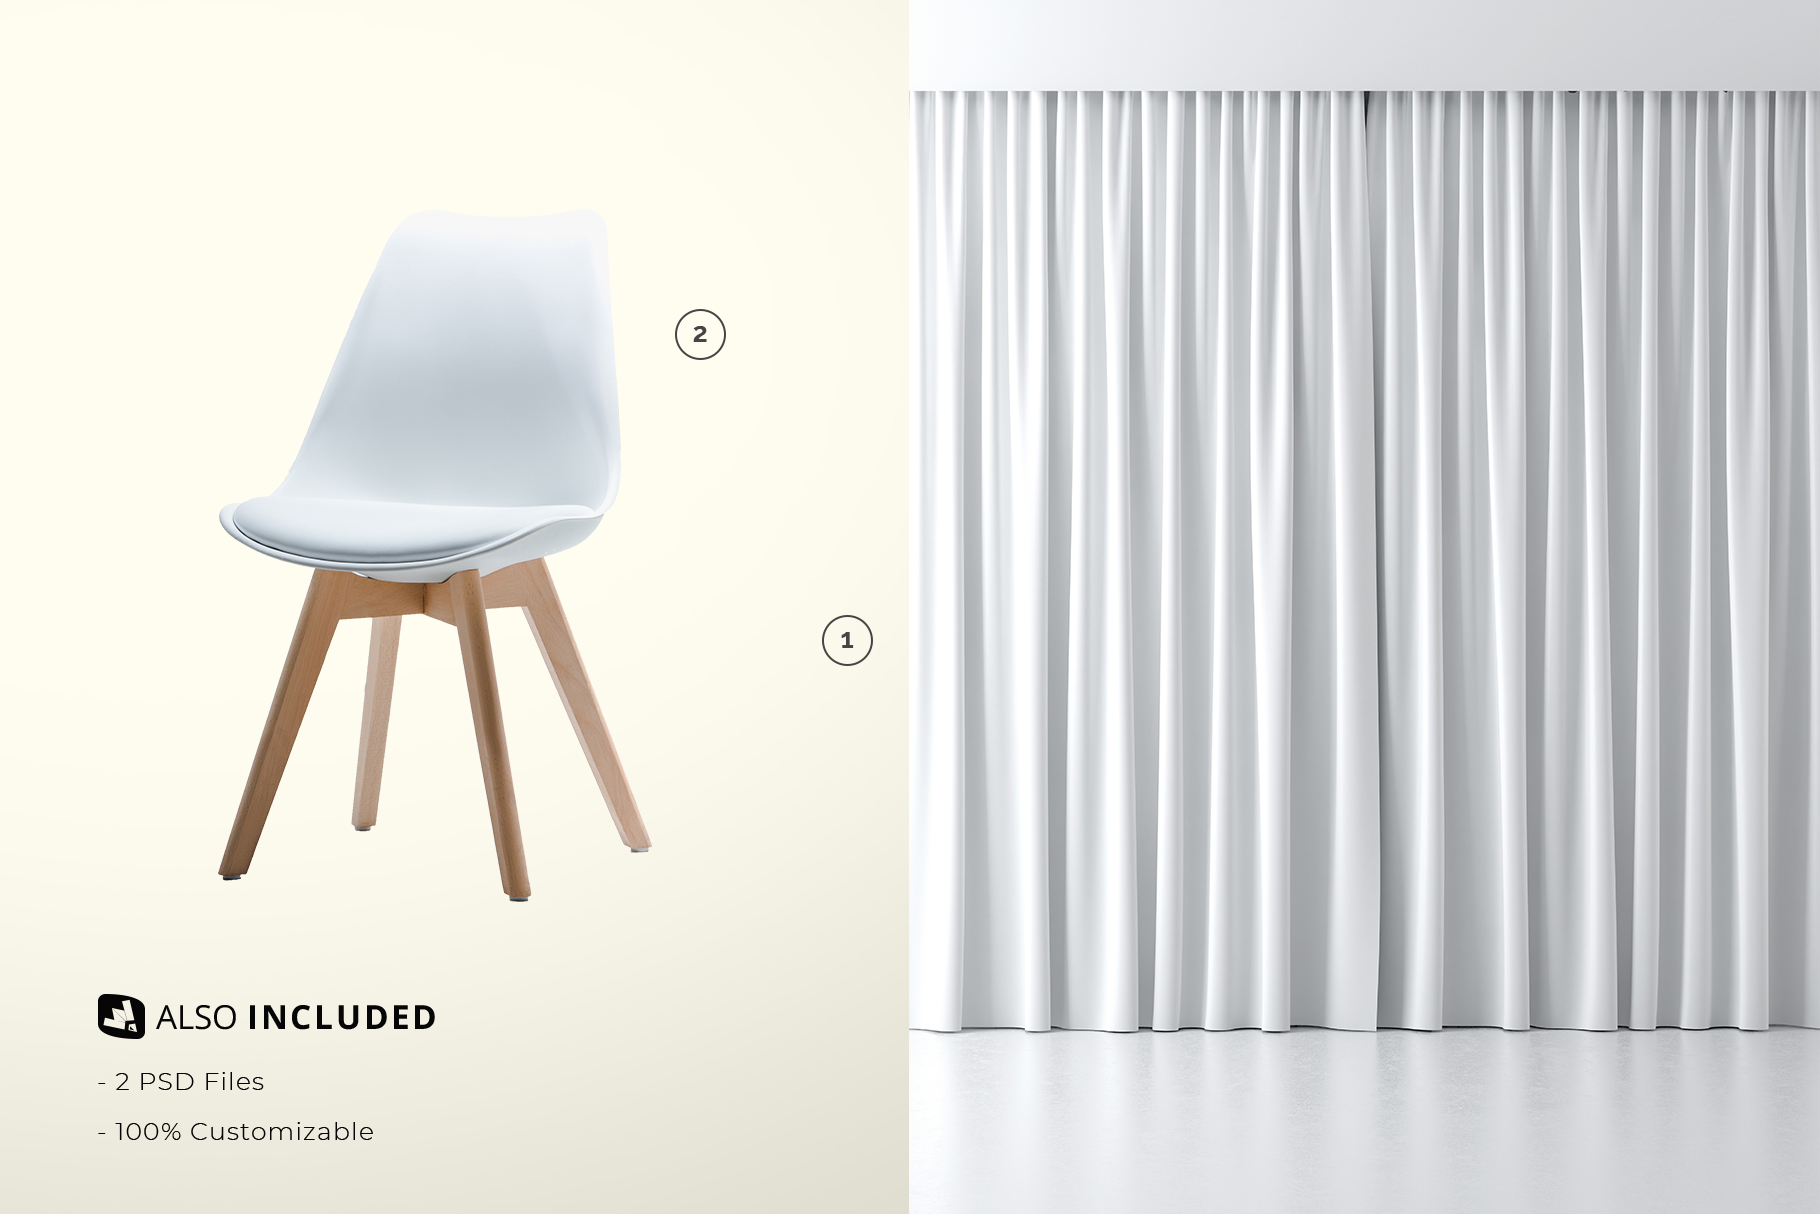 files included in the long curtain with chair mockup